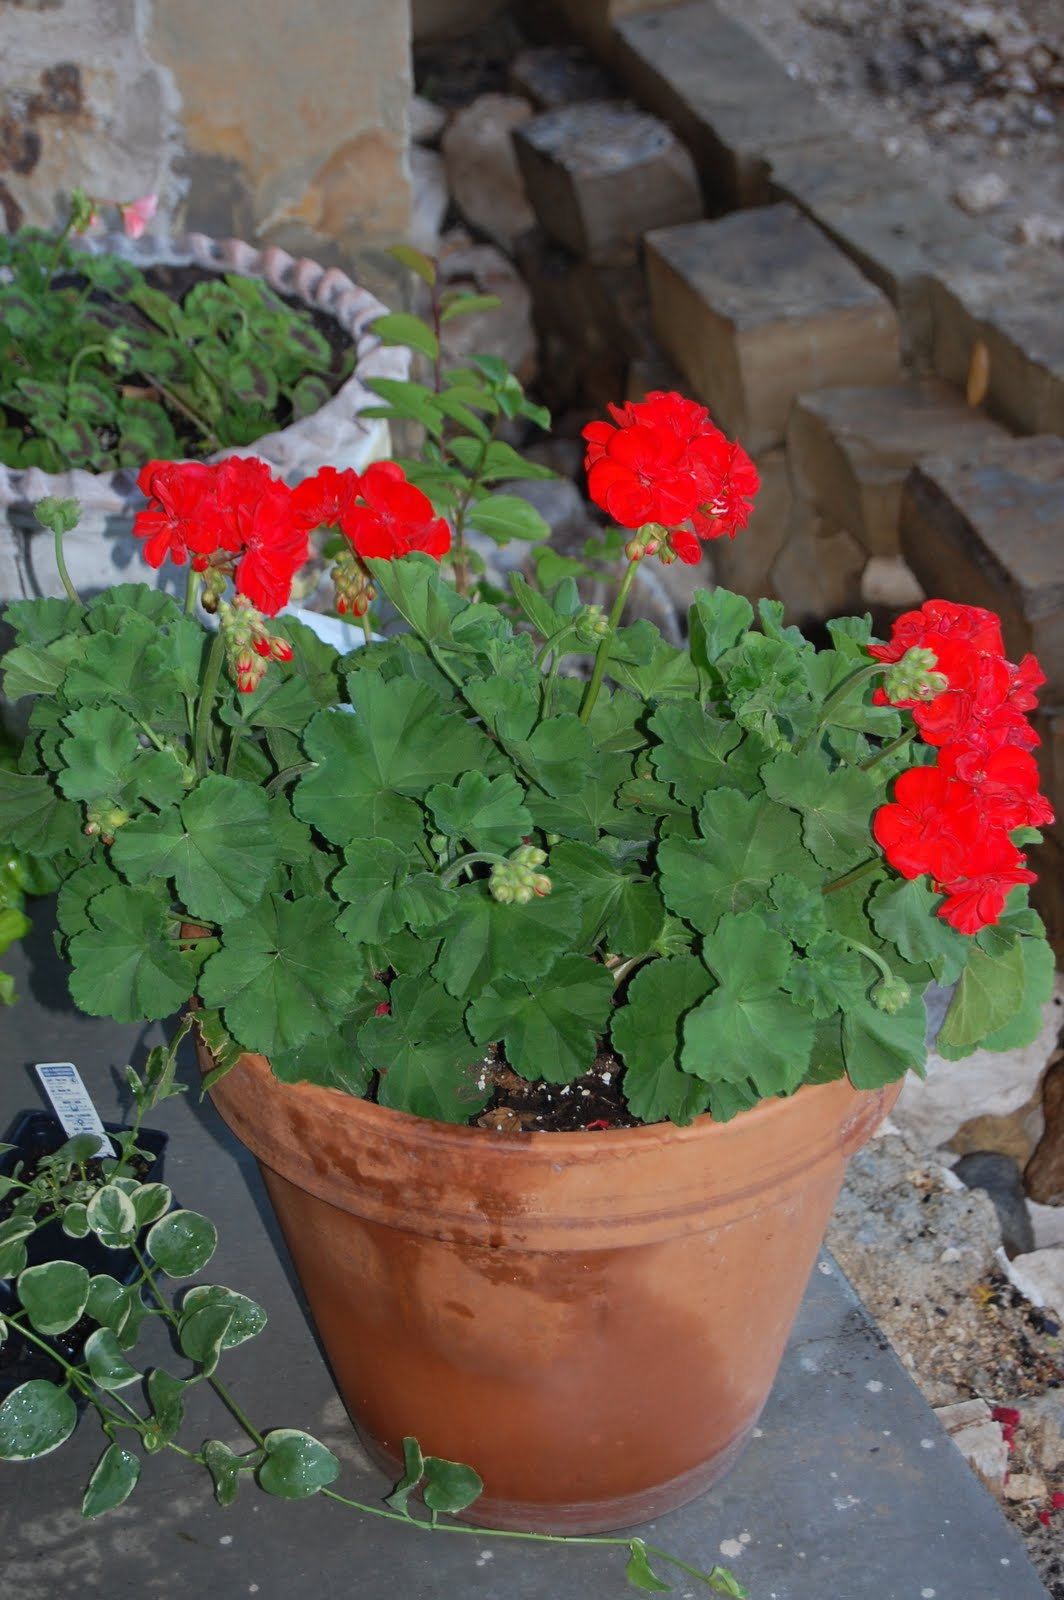 Make my country house a home planting my patio flowers furniture assembly tomorrow - Care geraniums flourishing balcony porch ...